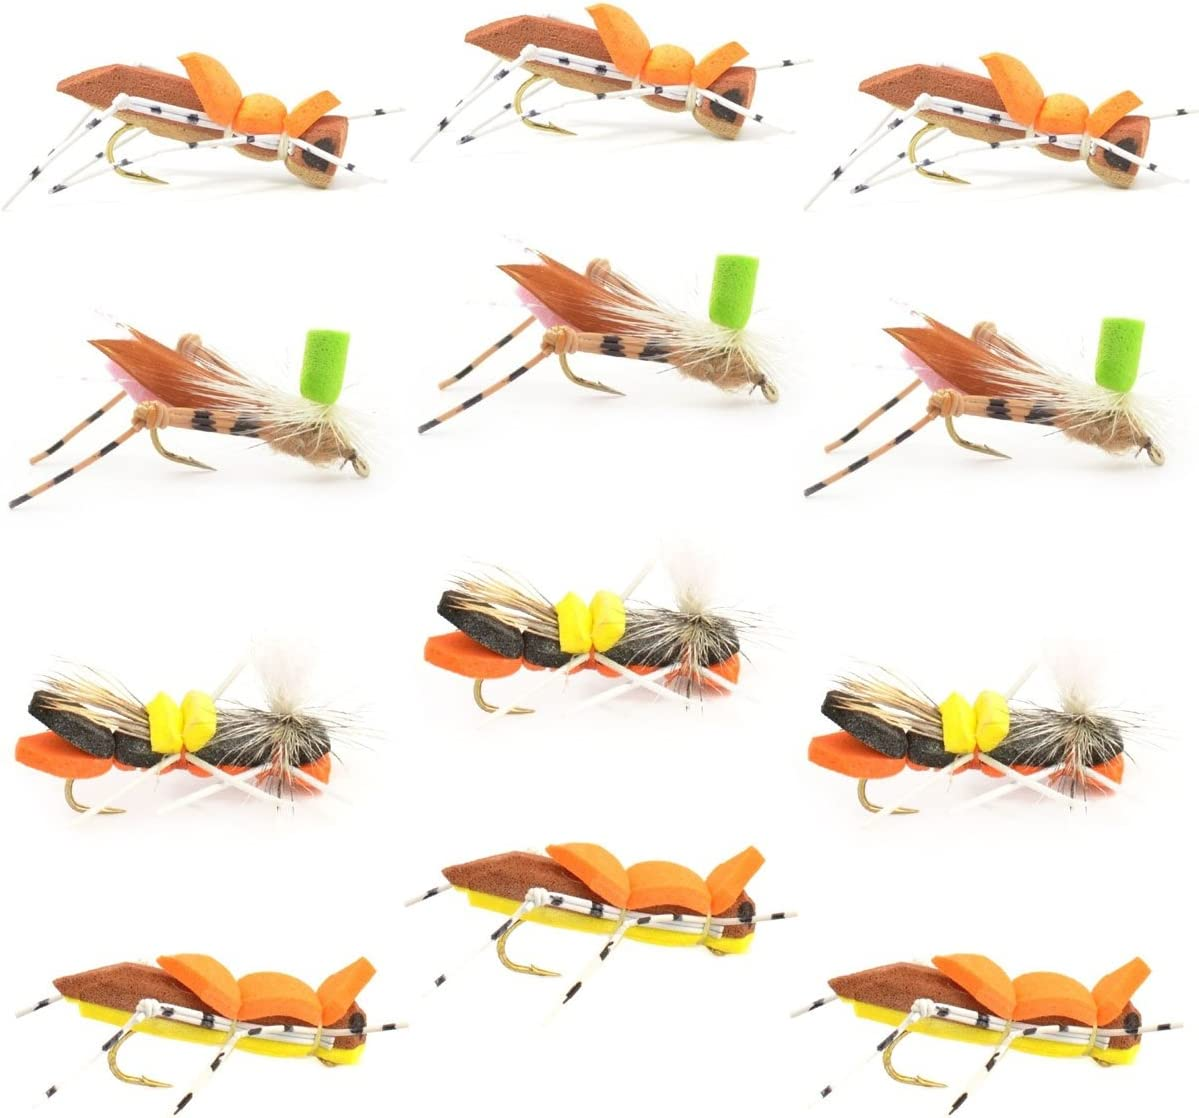 size 10 pack of 8 FLY FISHING PRIME collection GIRDLE BUG Nymphs